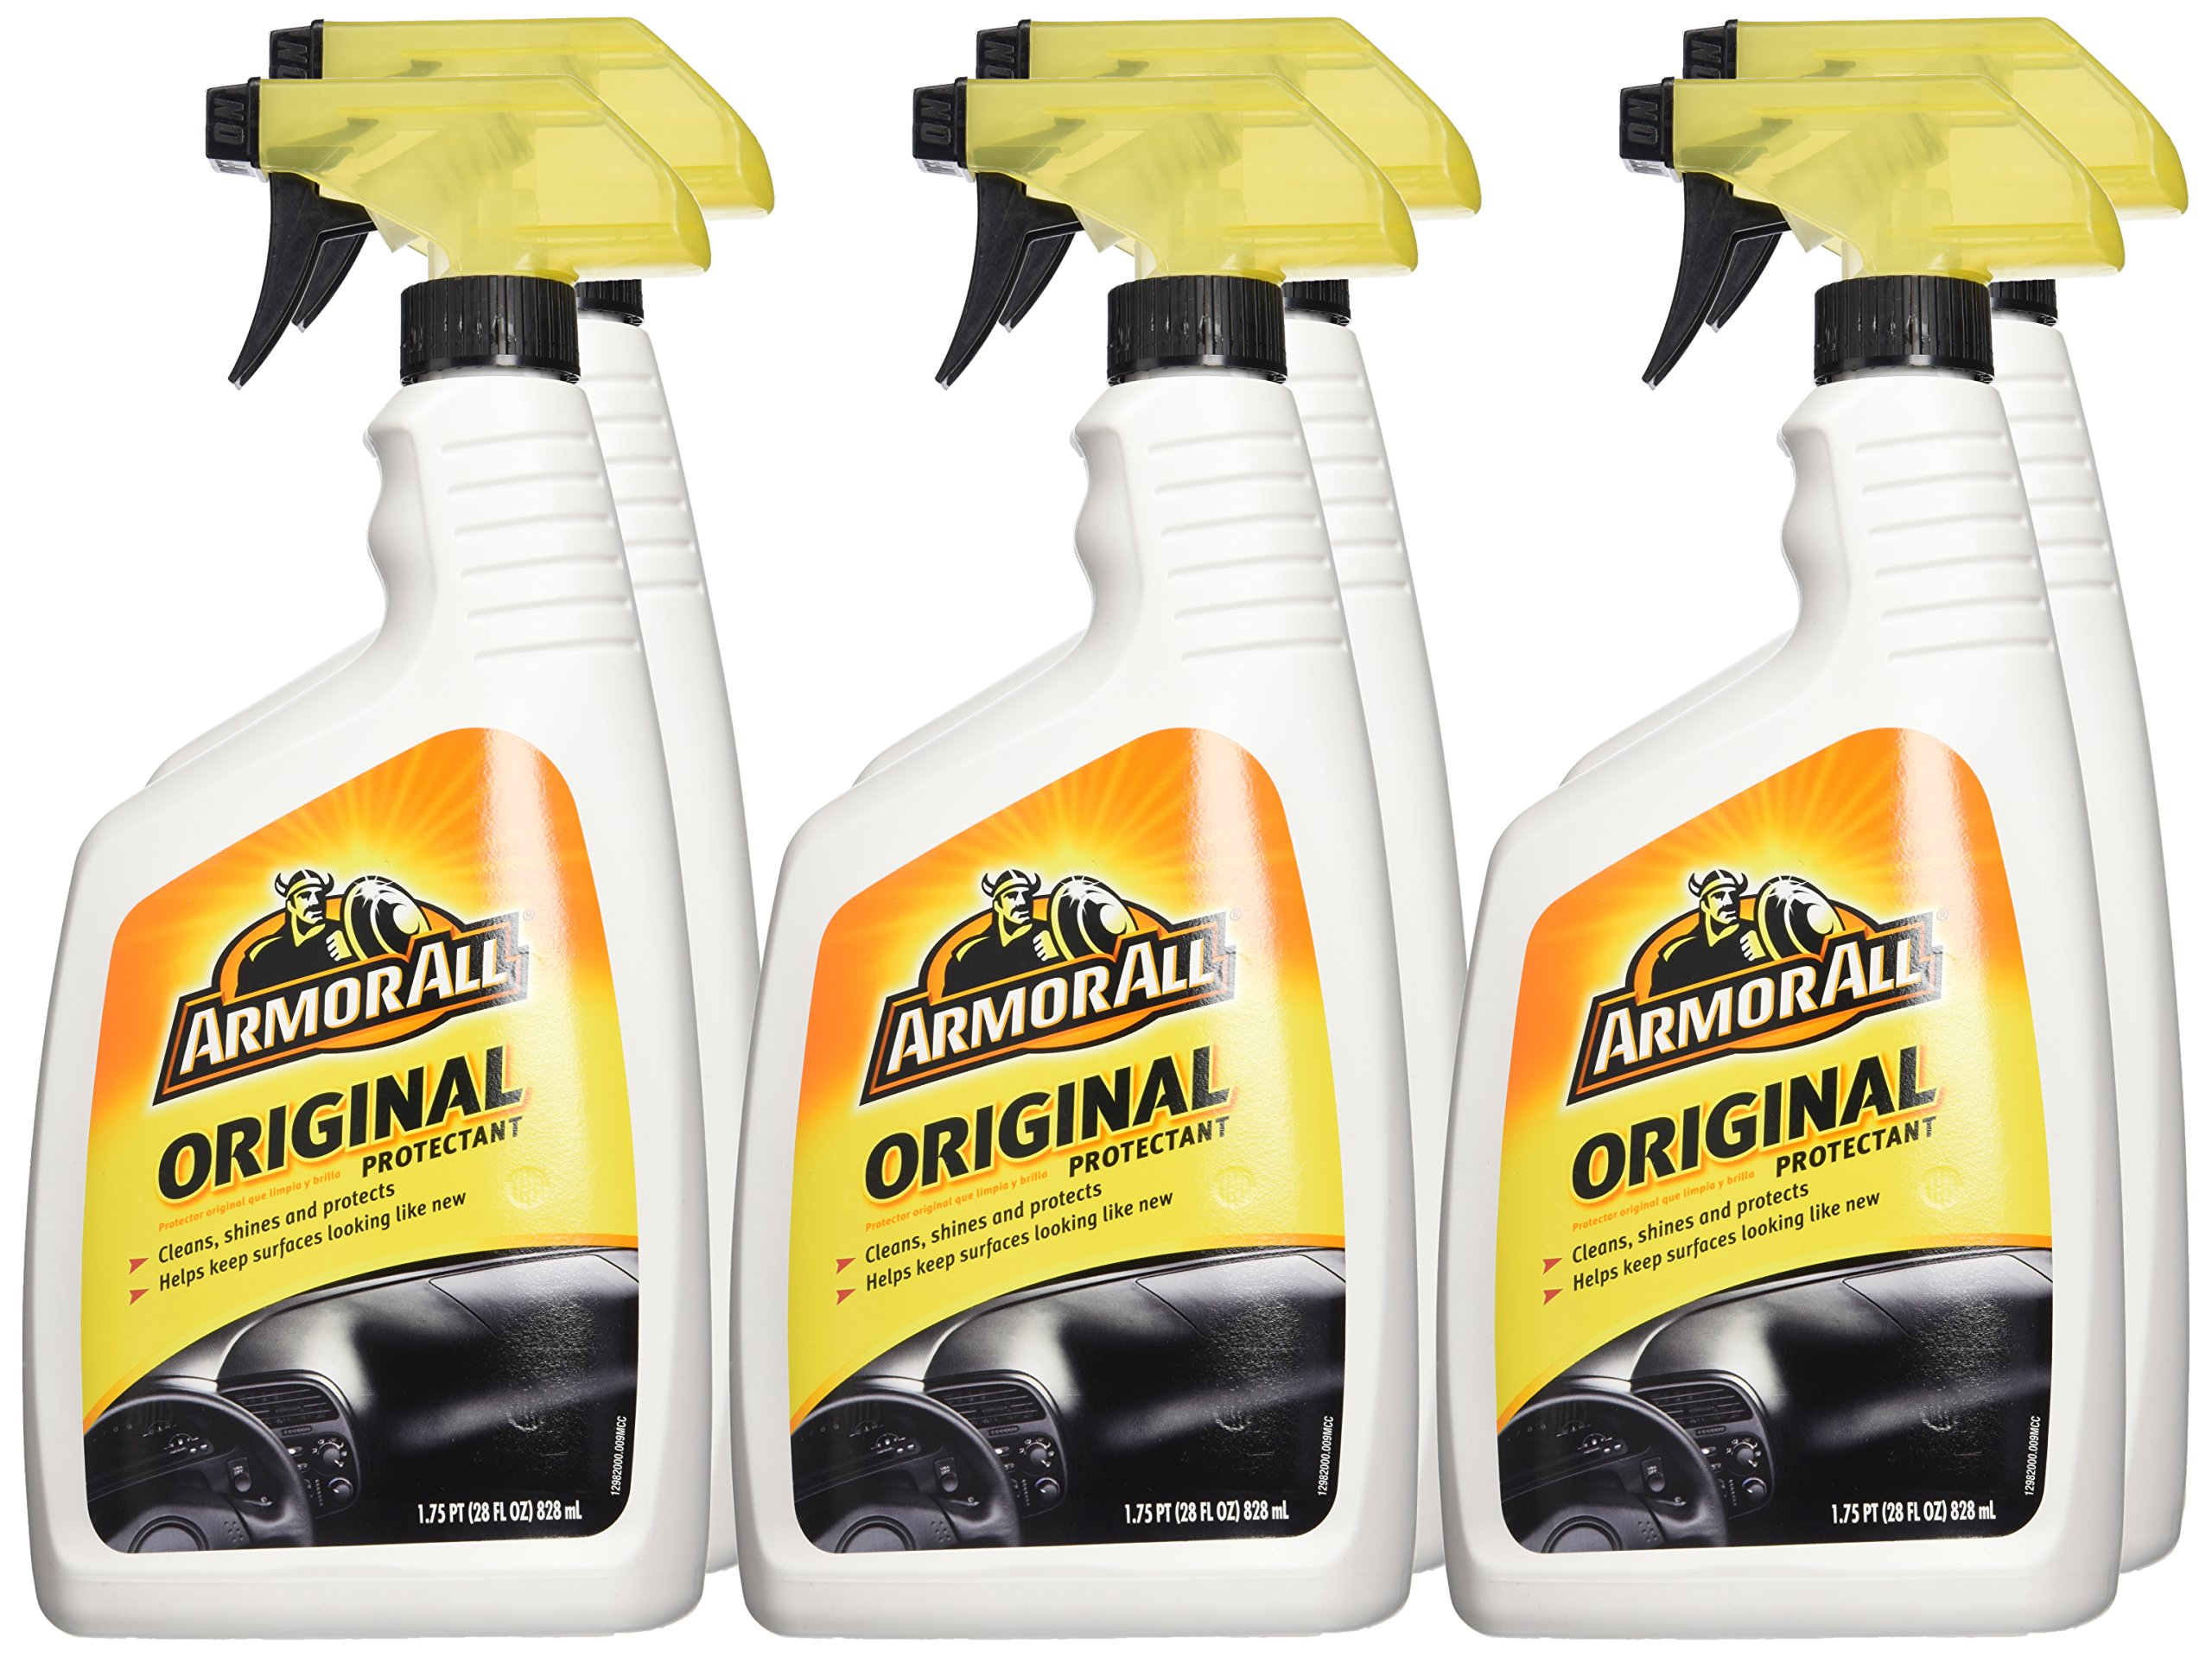 Armor All Original Protectant  (28 fl. oz.) (Case of 6) by Armor All (Image #2)